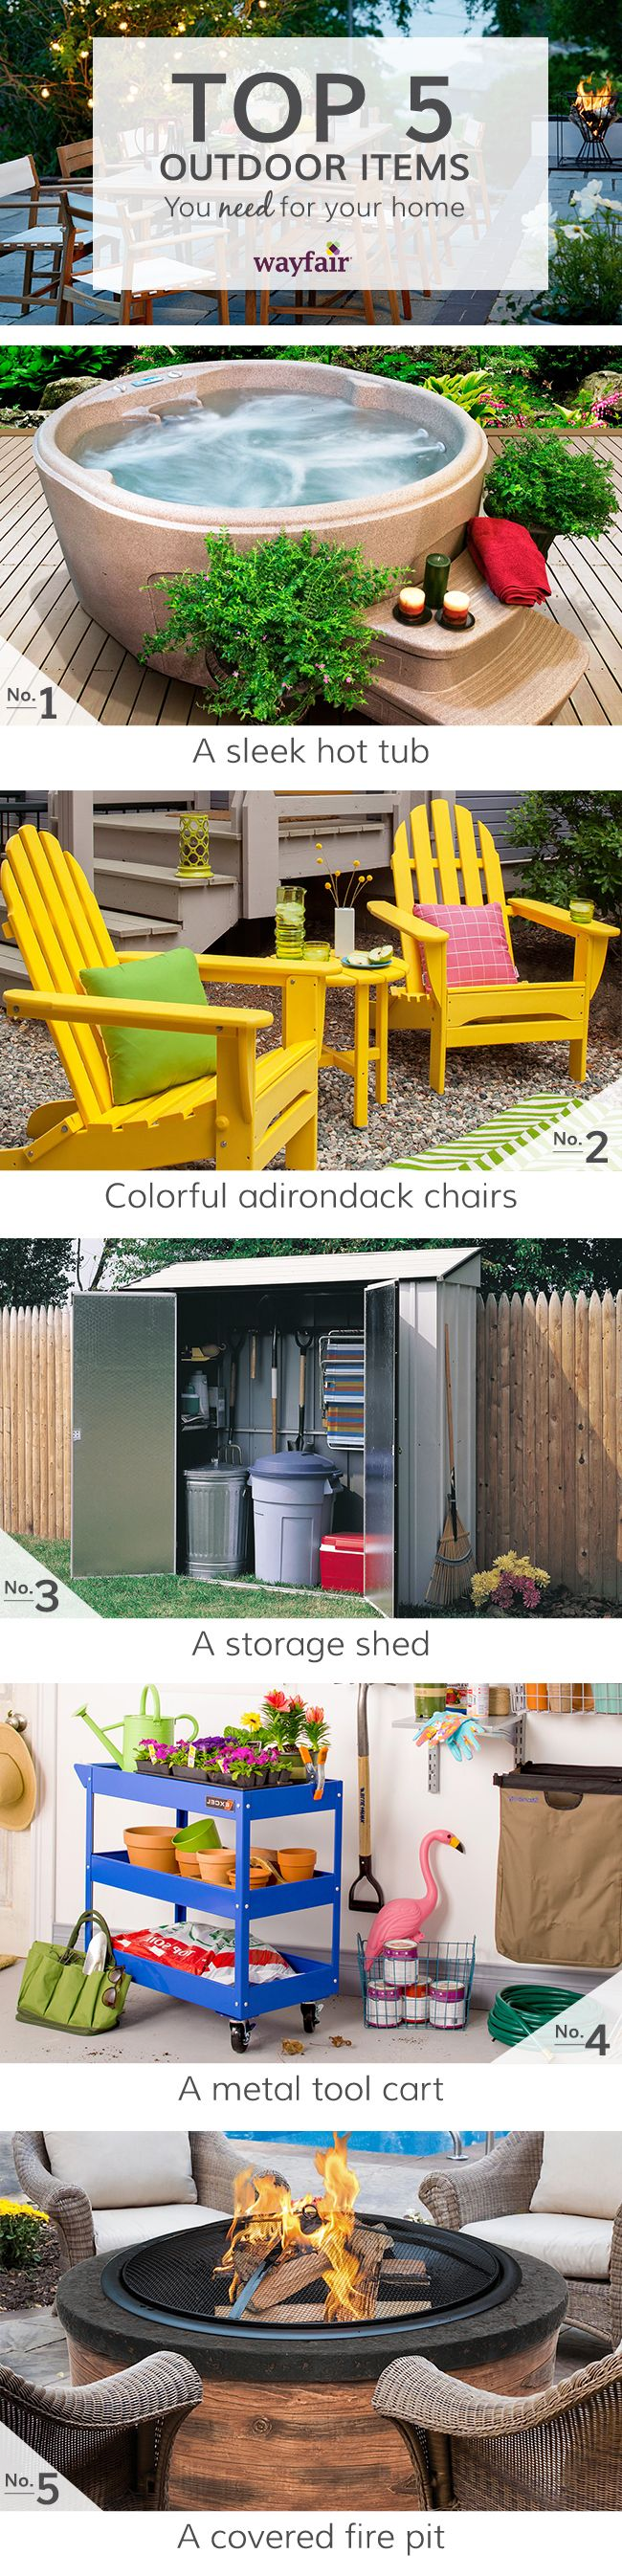 57 best outside images on pinterest gardening diy and backyard